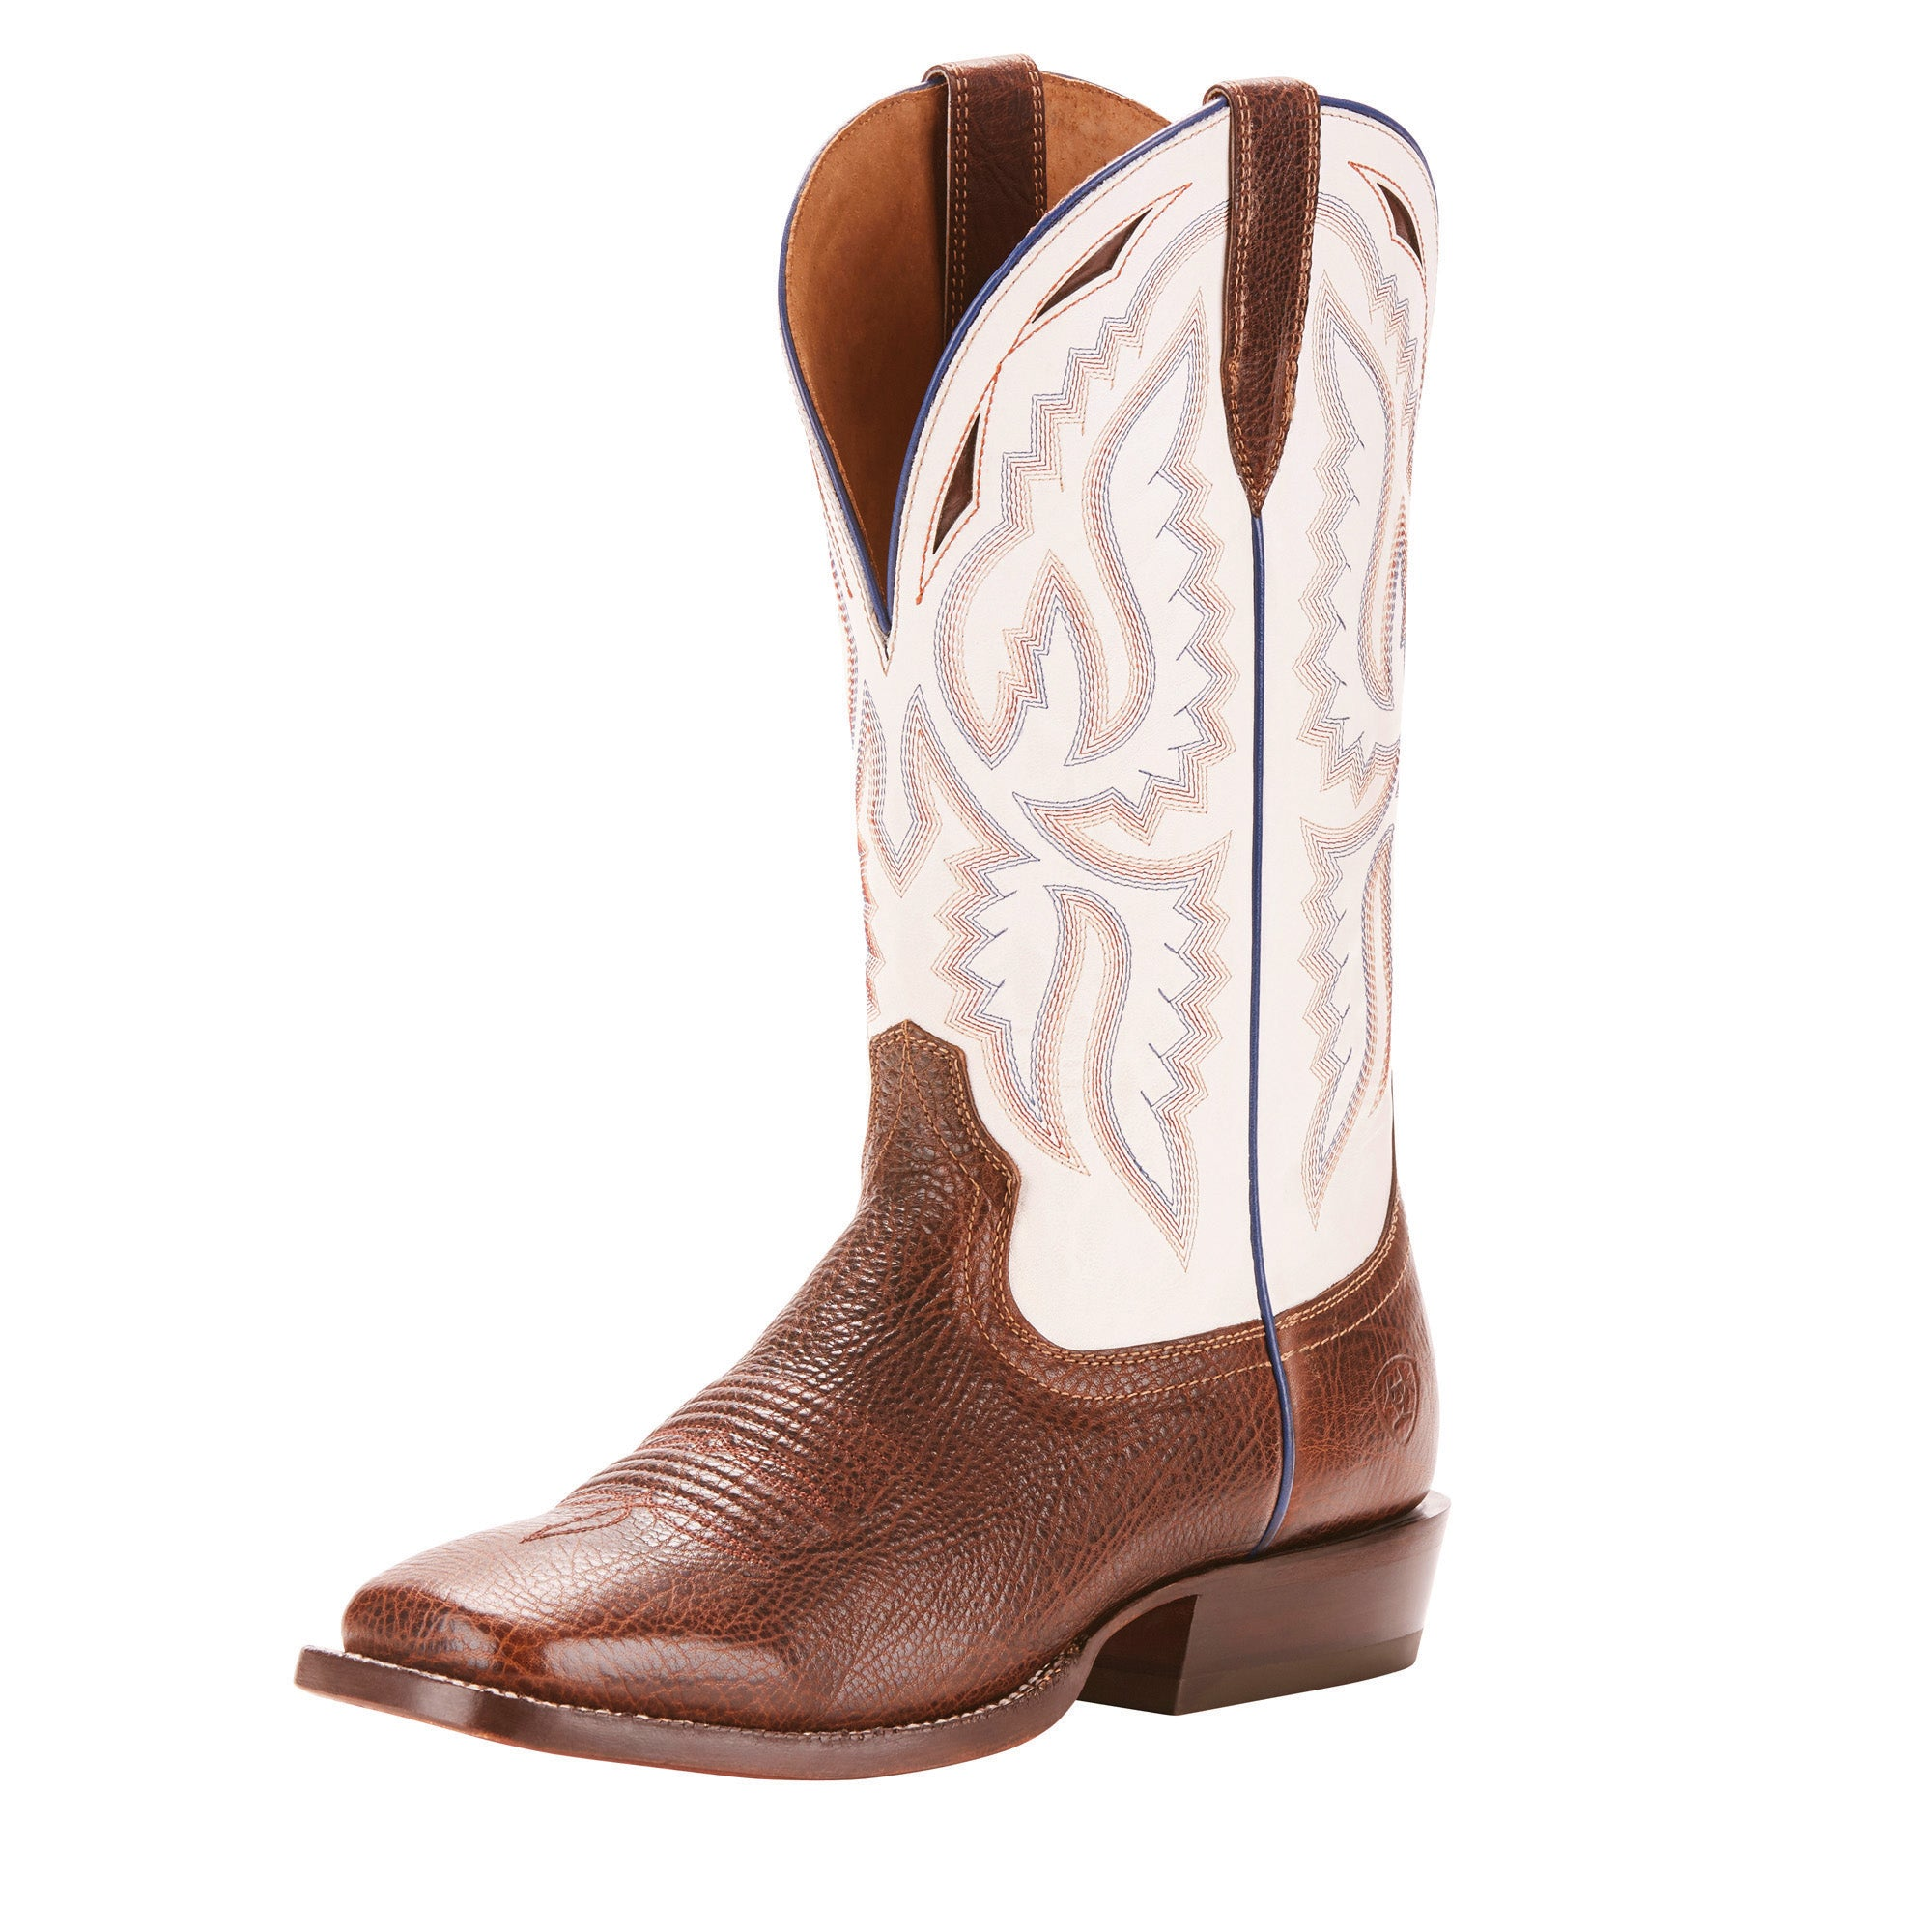 a88eeeb7771 Men's Ariat Bronc Stomper Boot #10025077